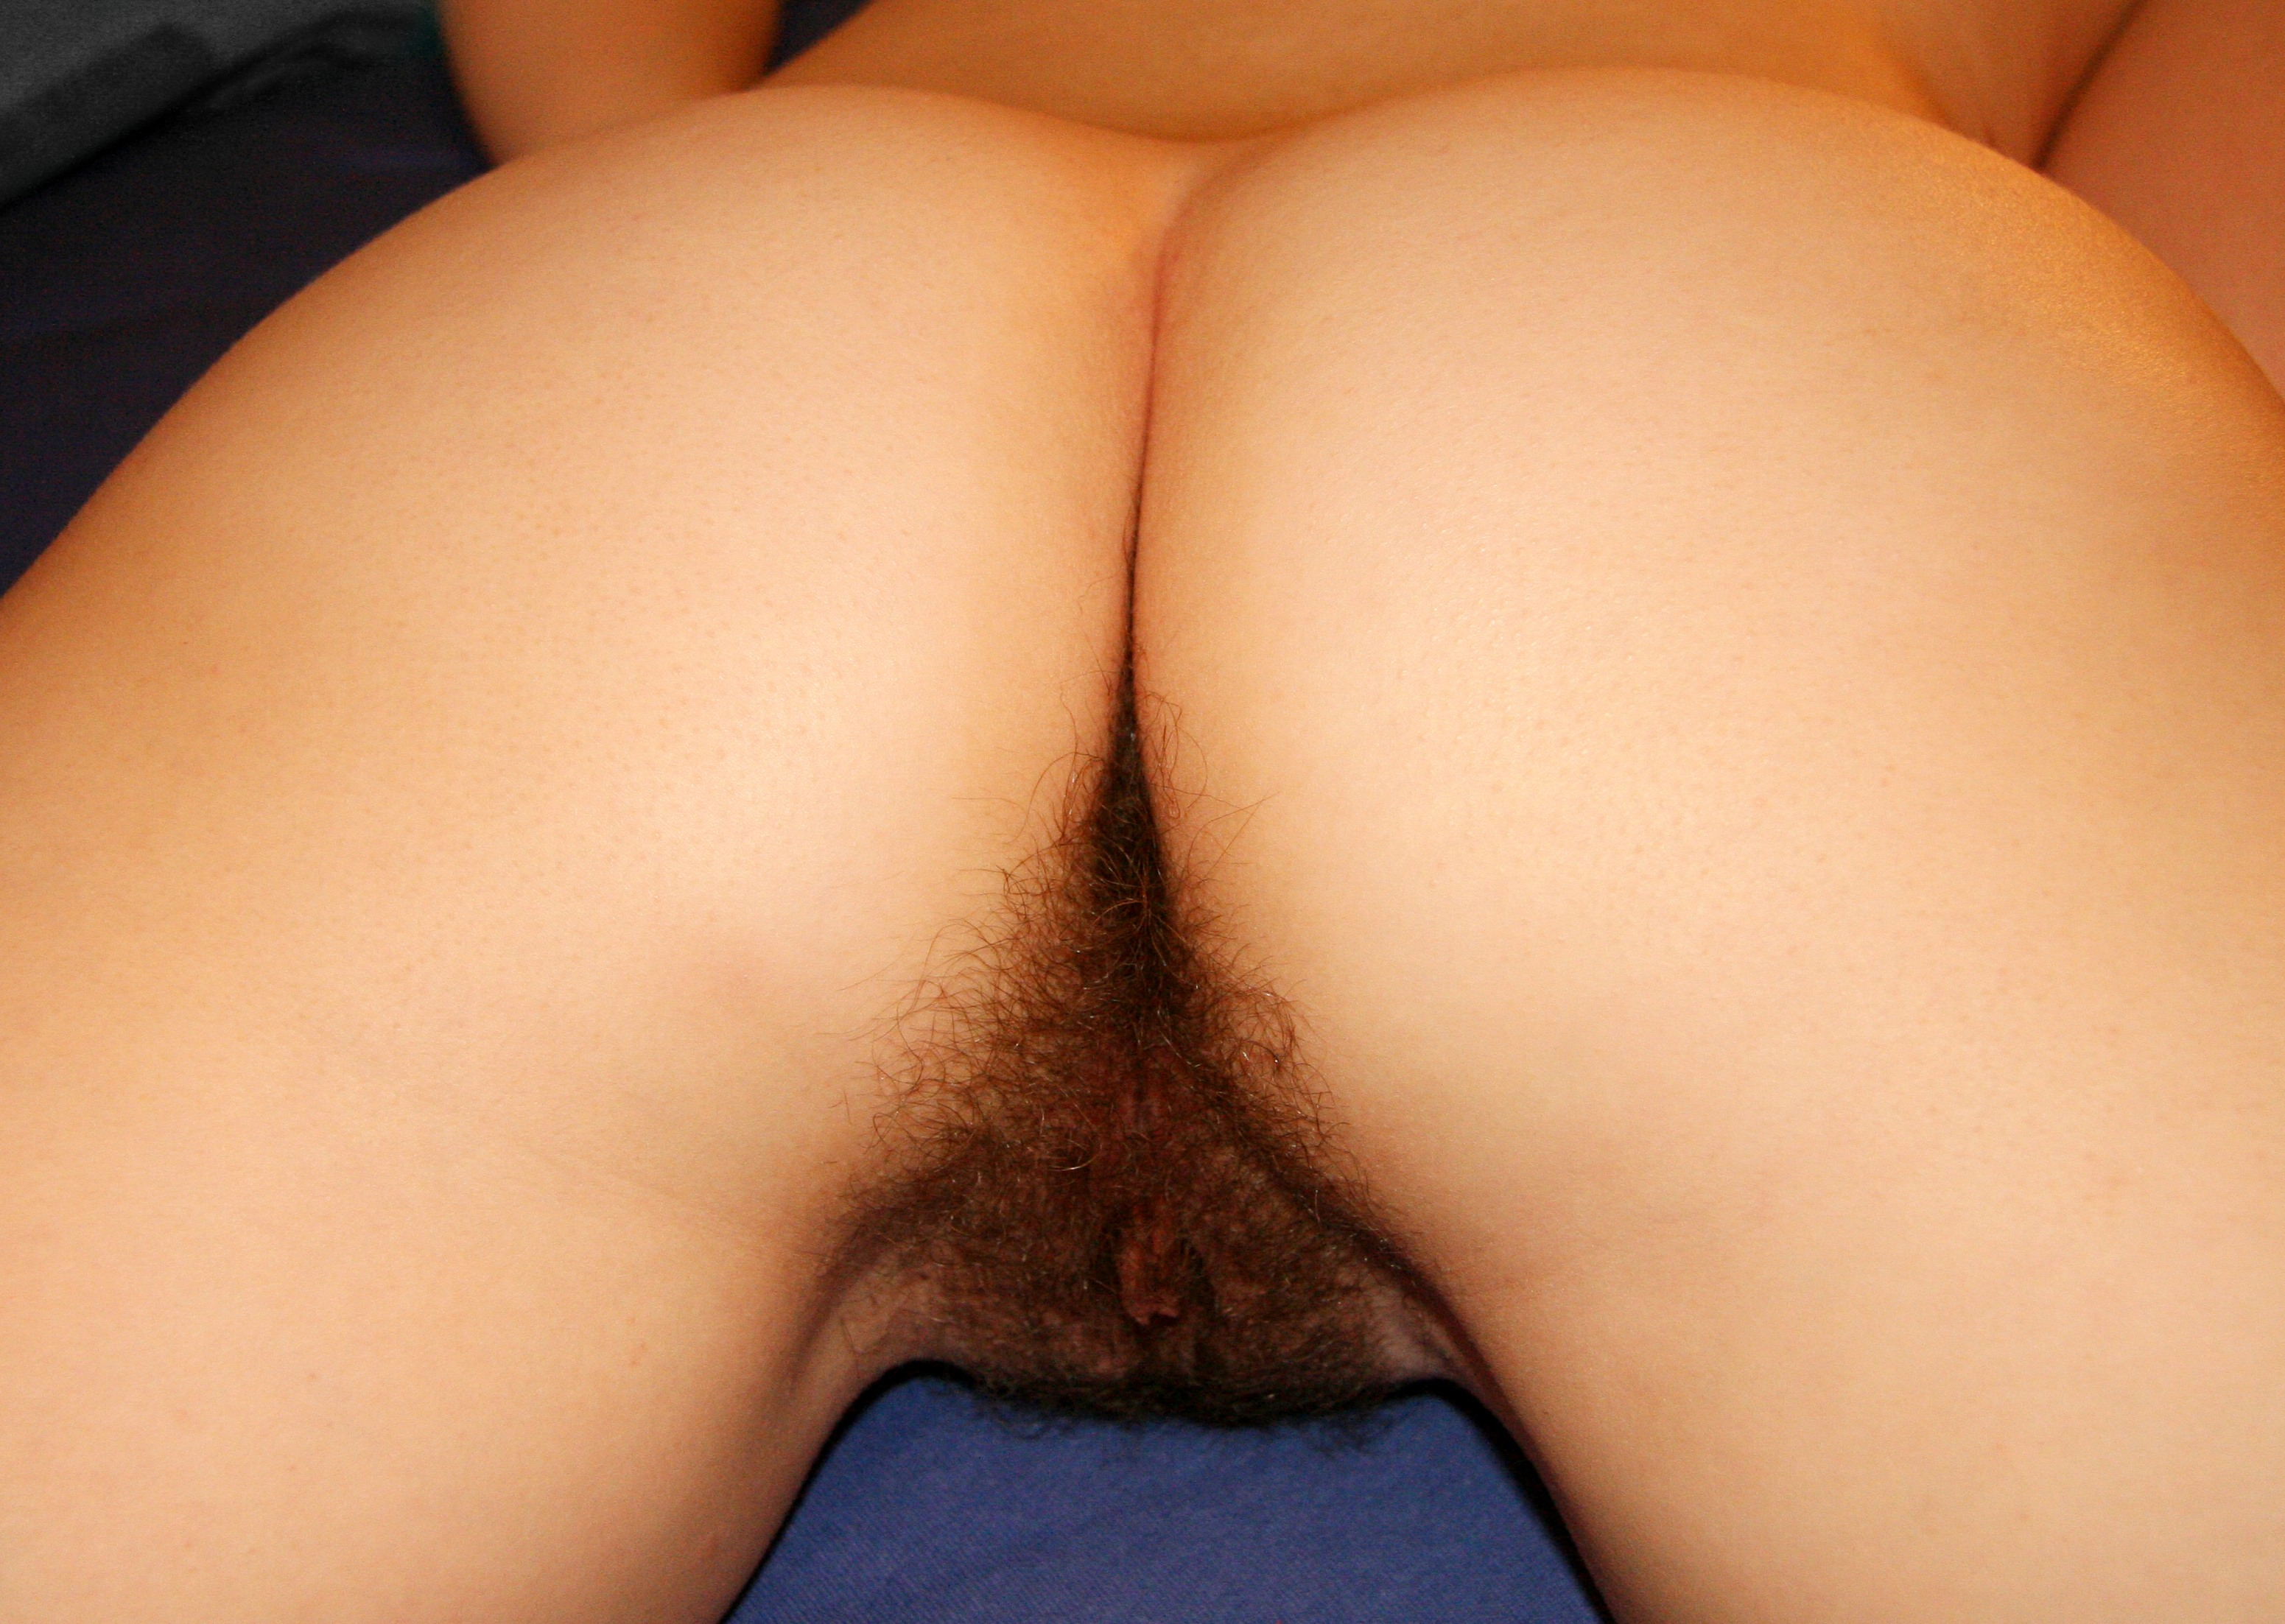 Dressed girly hair man pubic shaved don't think